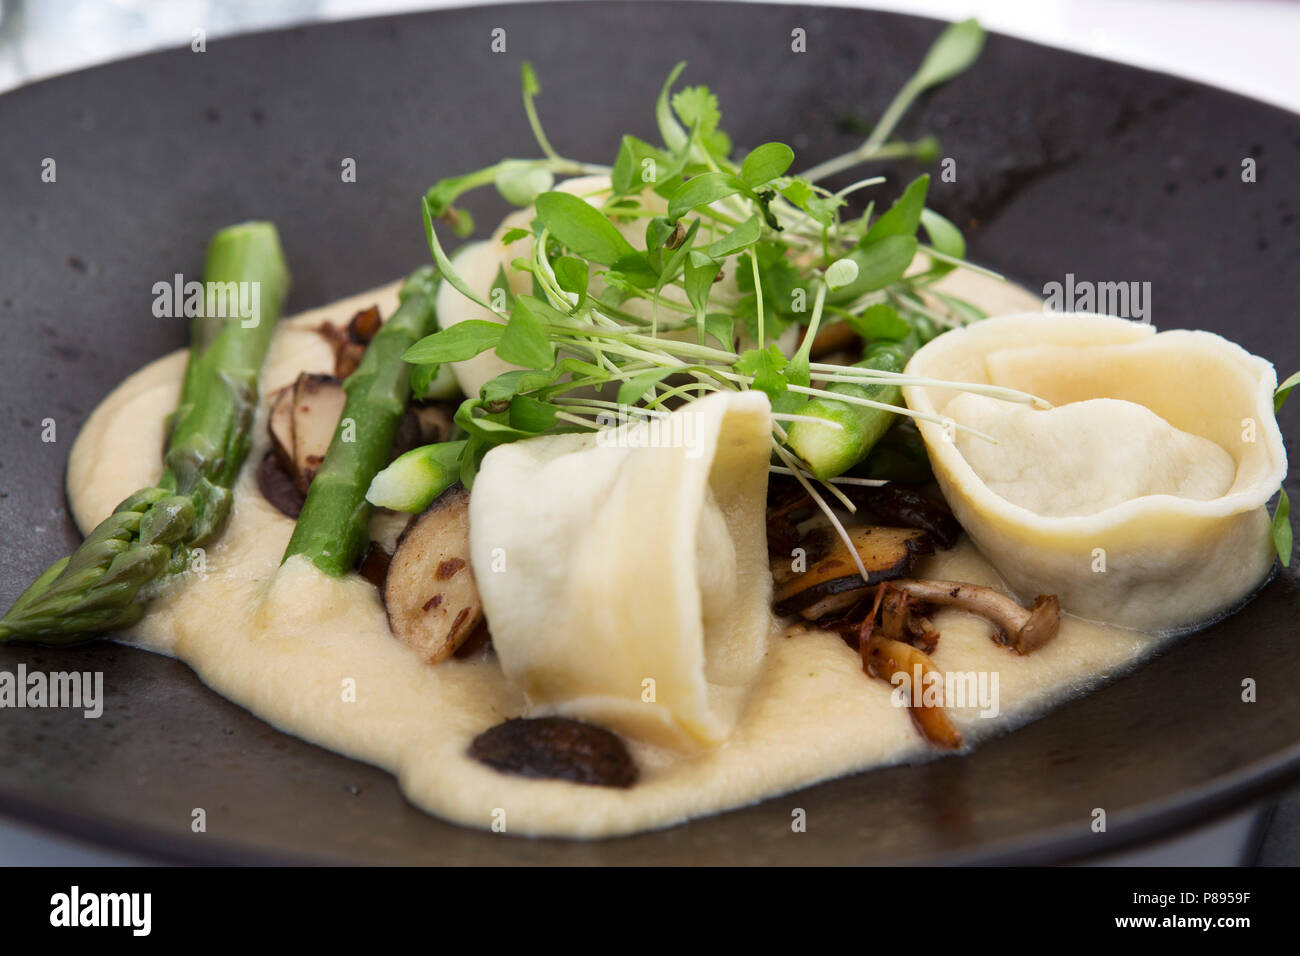 Pasta served with green asparagus during Dine by the Tyne, a version of Dinner in the Sky, dinner at a table suspended 100 feet above the River Tyne.  - Stock Image